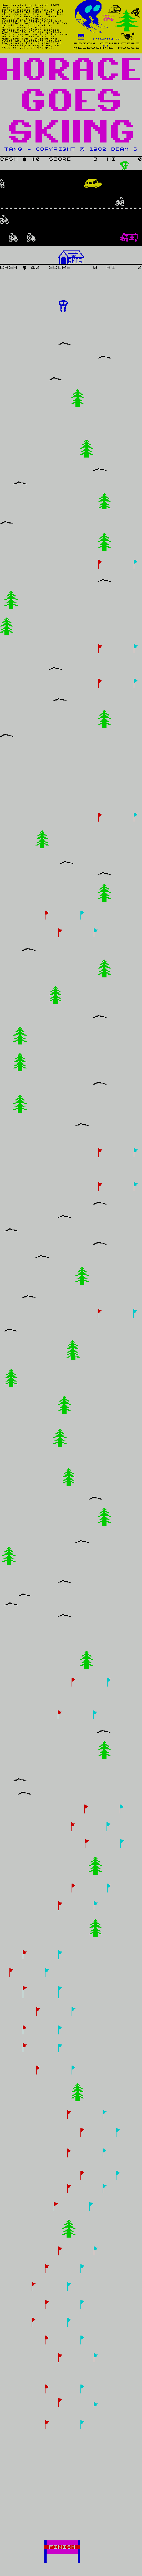 Horace 2 - Horace Goes Skiing - The Map